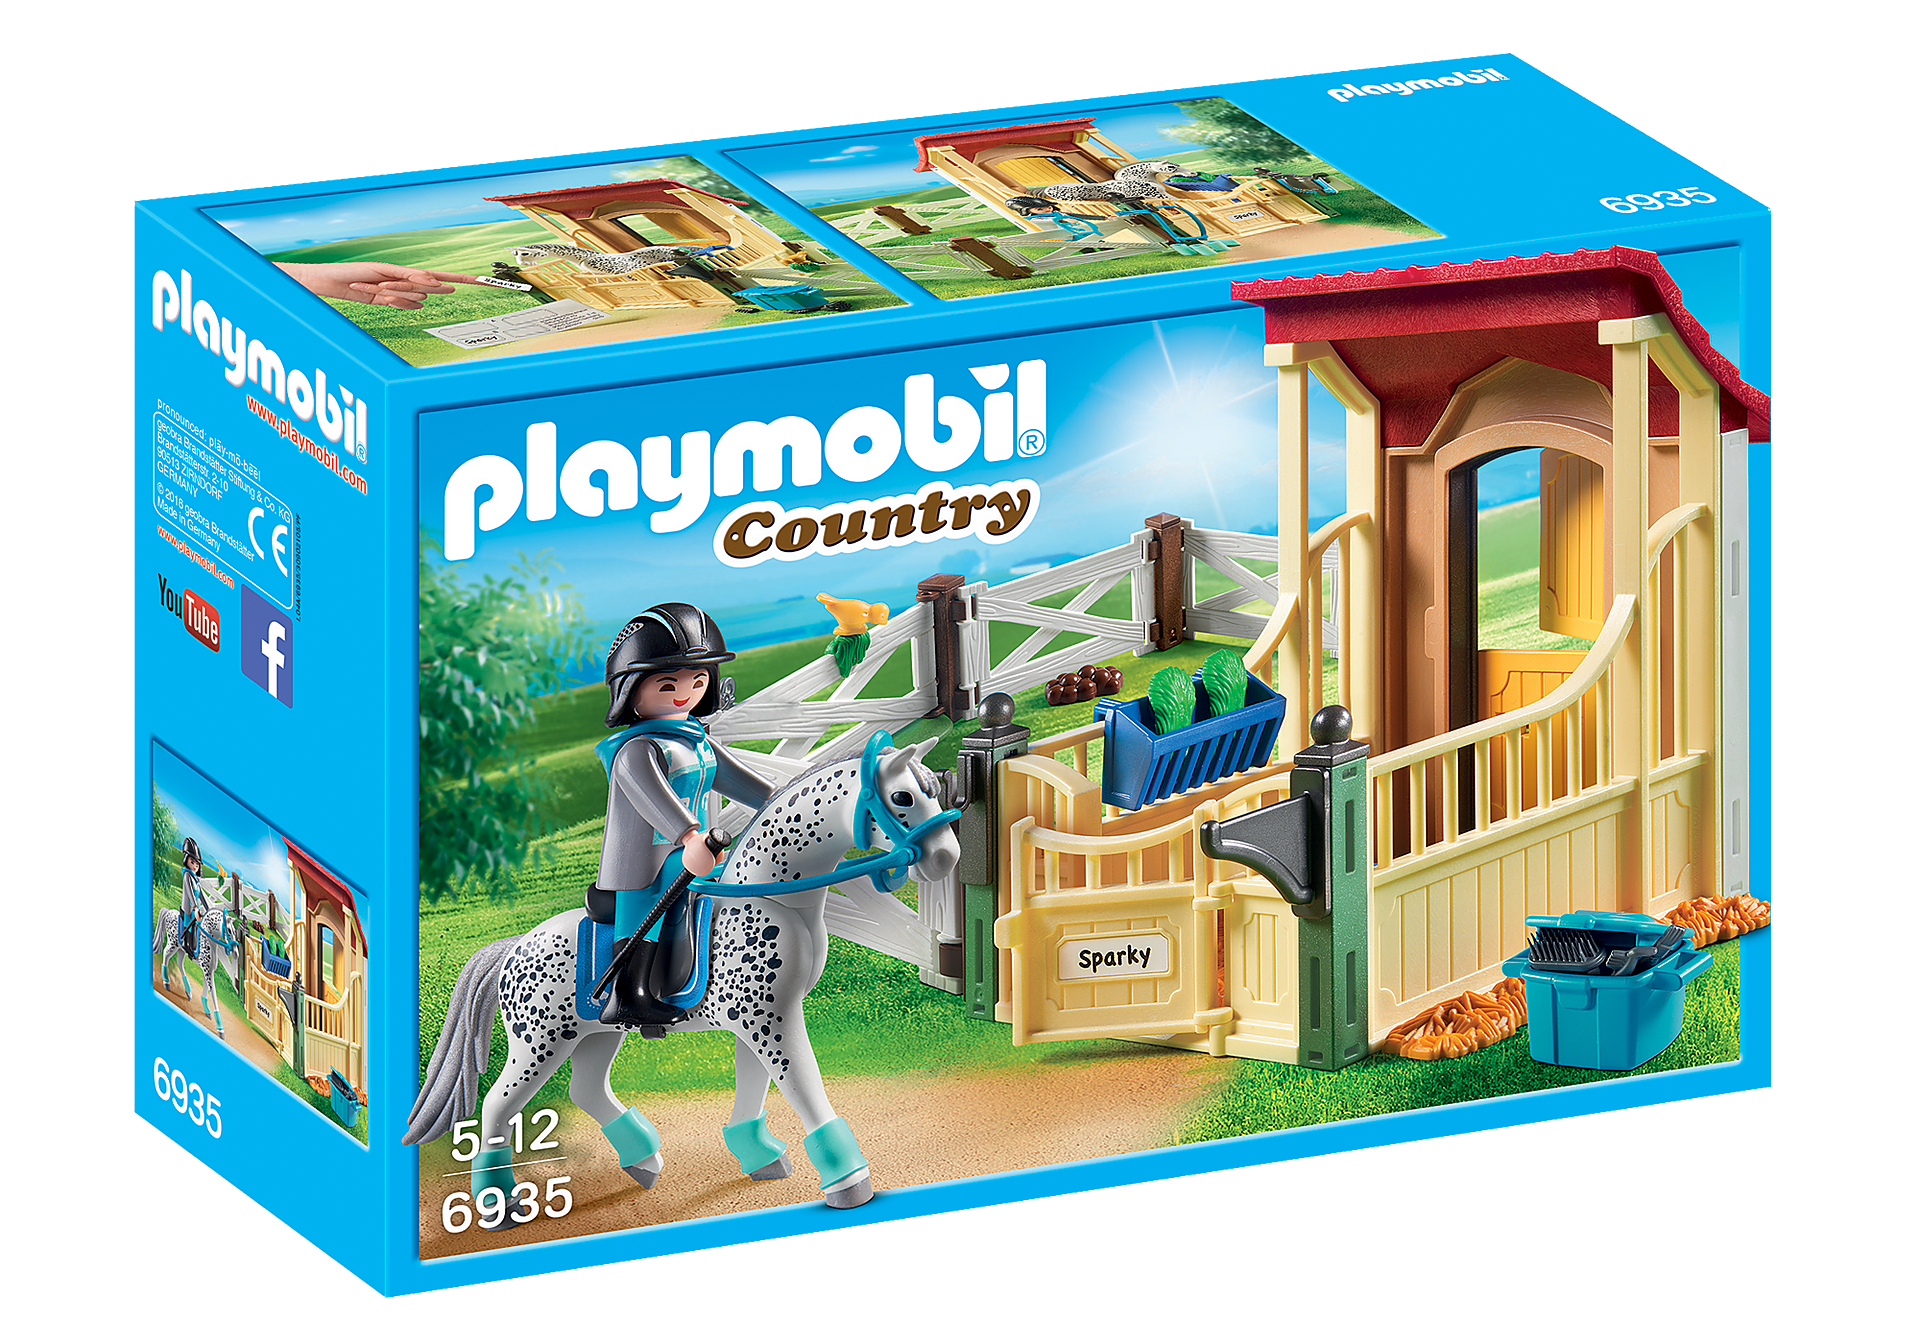 http://media.playmobil.com/i/playmobil/6935_product_box_front/Horse Stable with Appaloosa